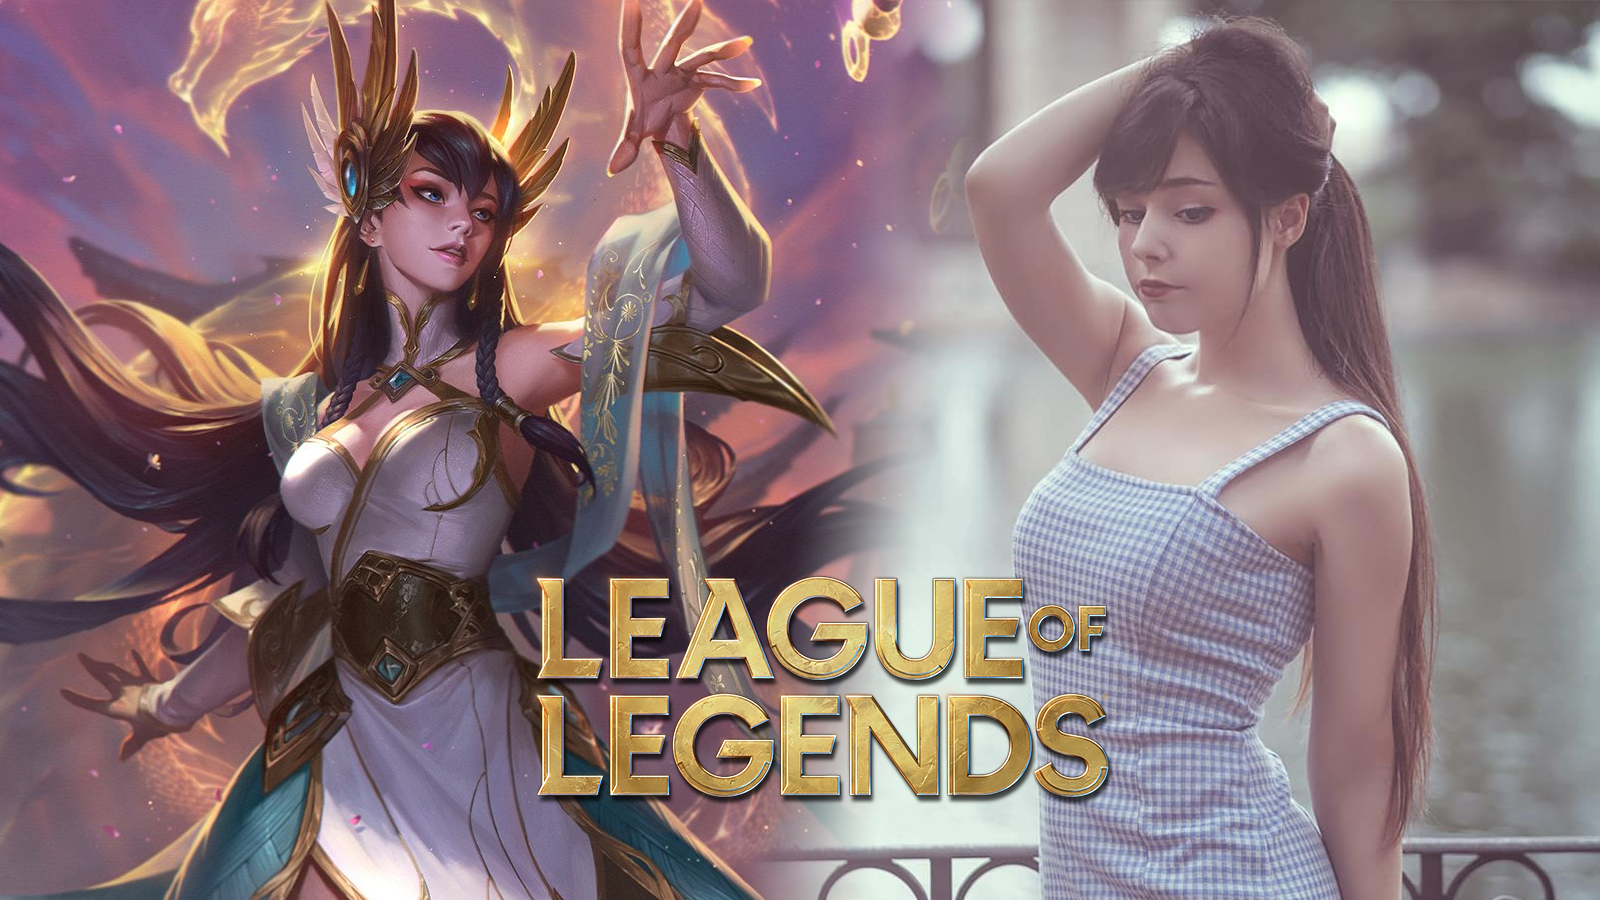 Divine Sword Irelia in League of Legends and cosplayer nymphahri